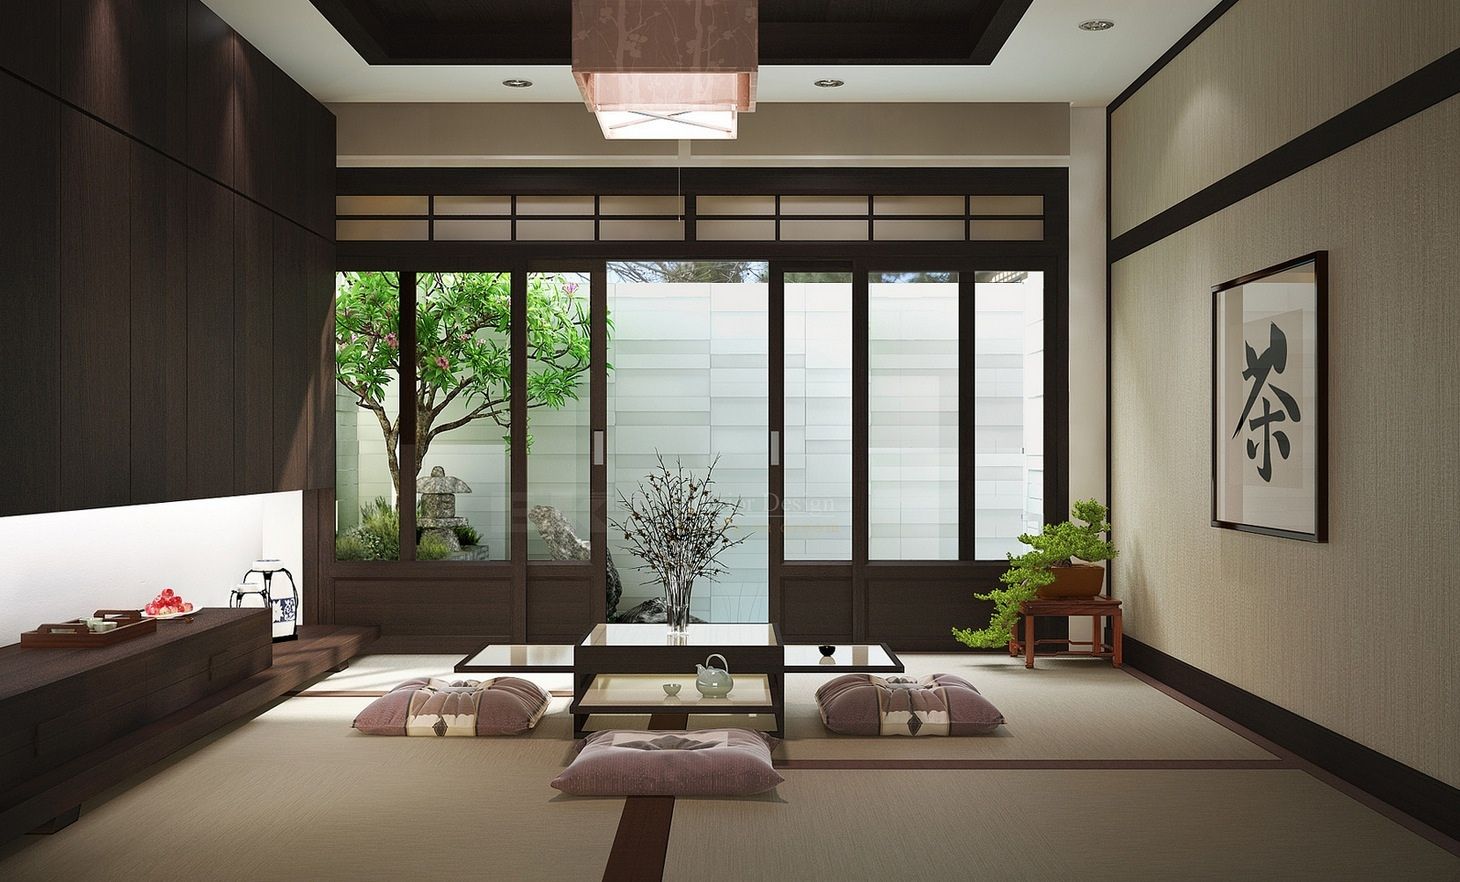 Japanese decor living room - Japanese Decor Living Room 4